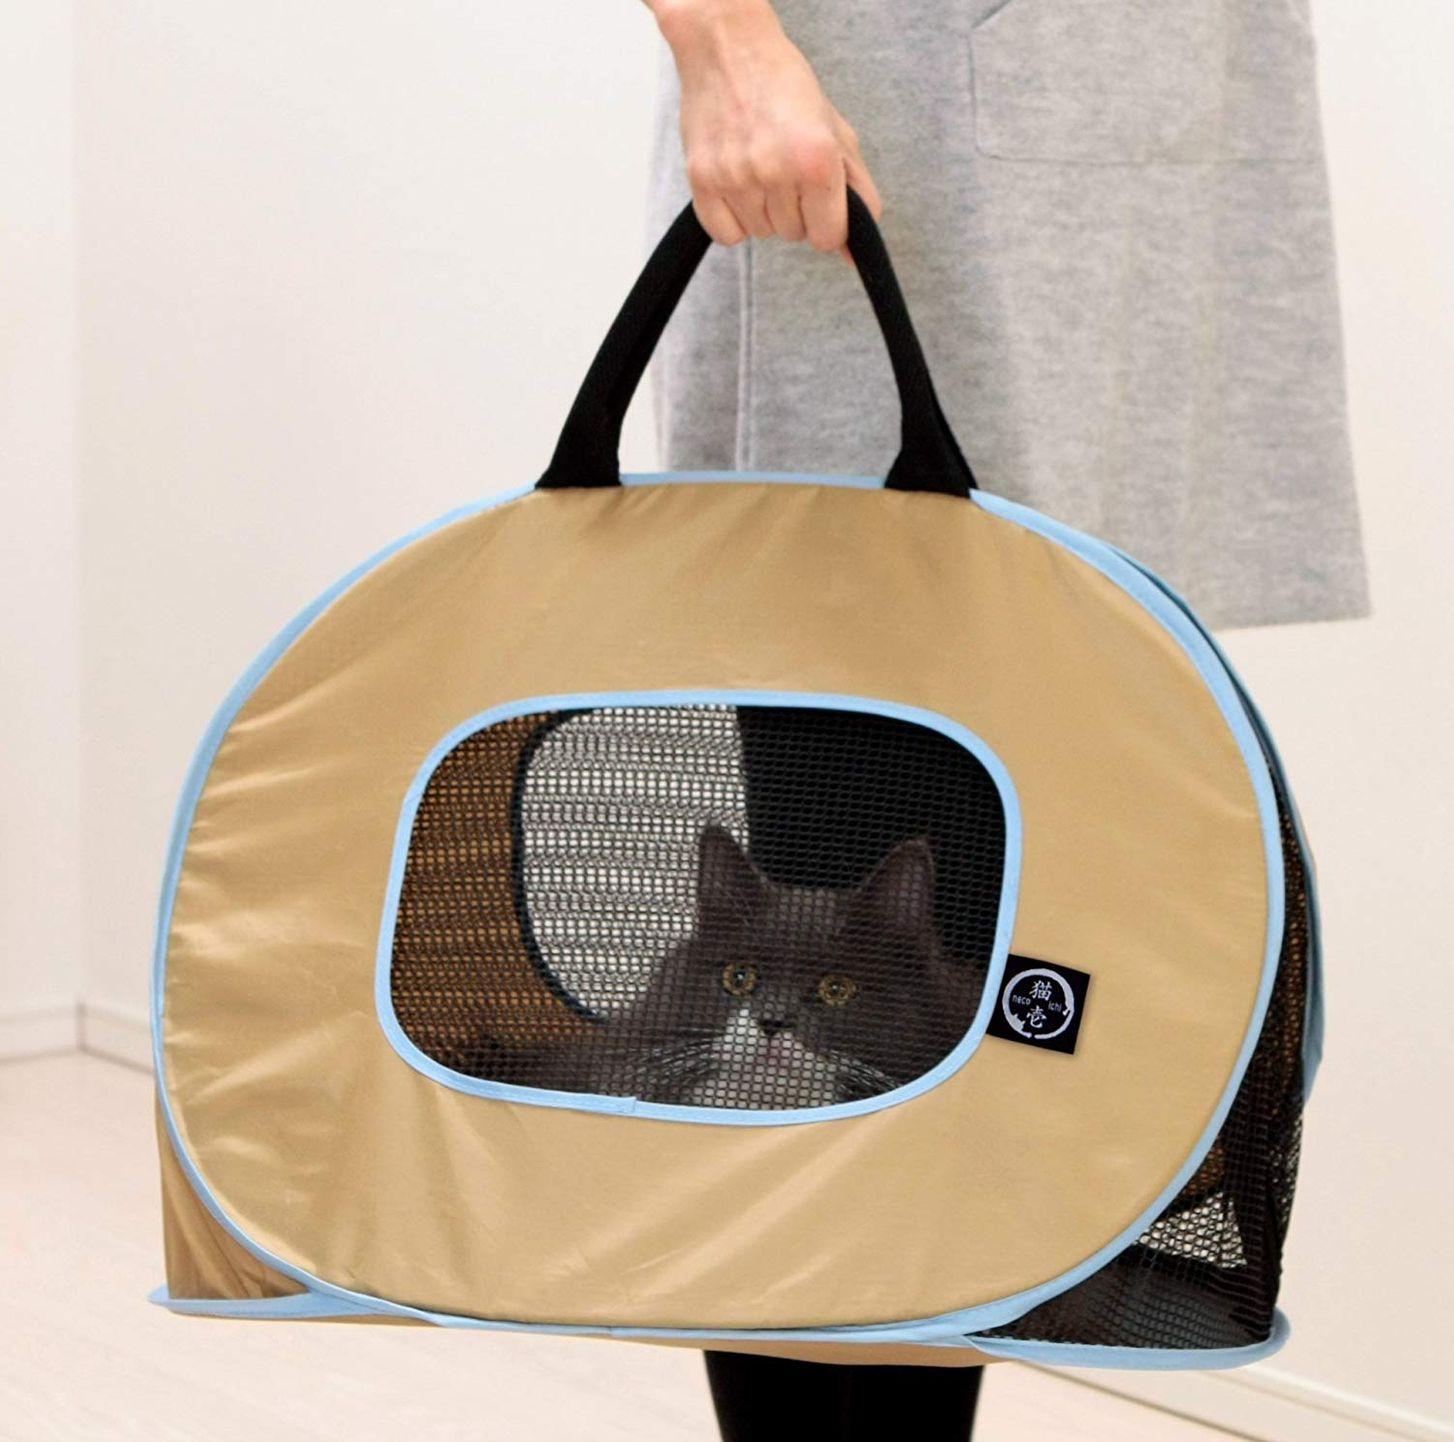 1d35902369 Necoichi Portable Ultra Light Cat Carrier